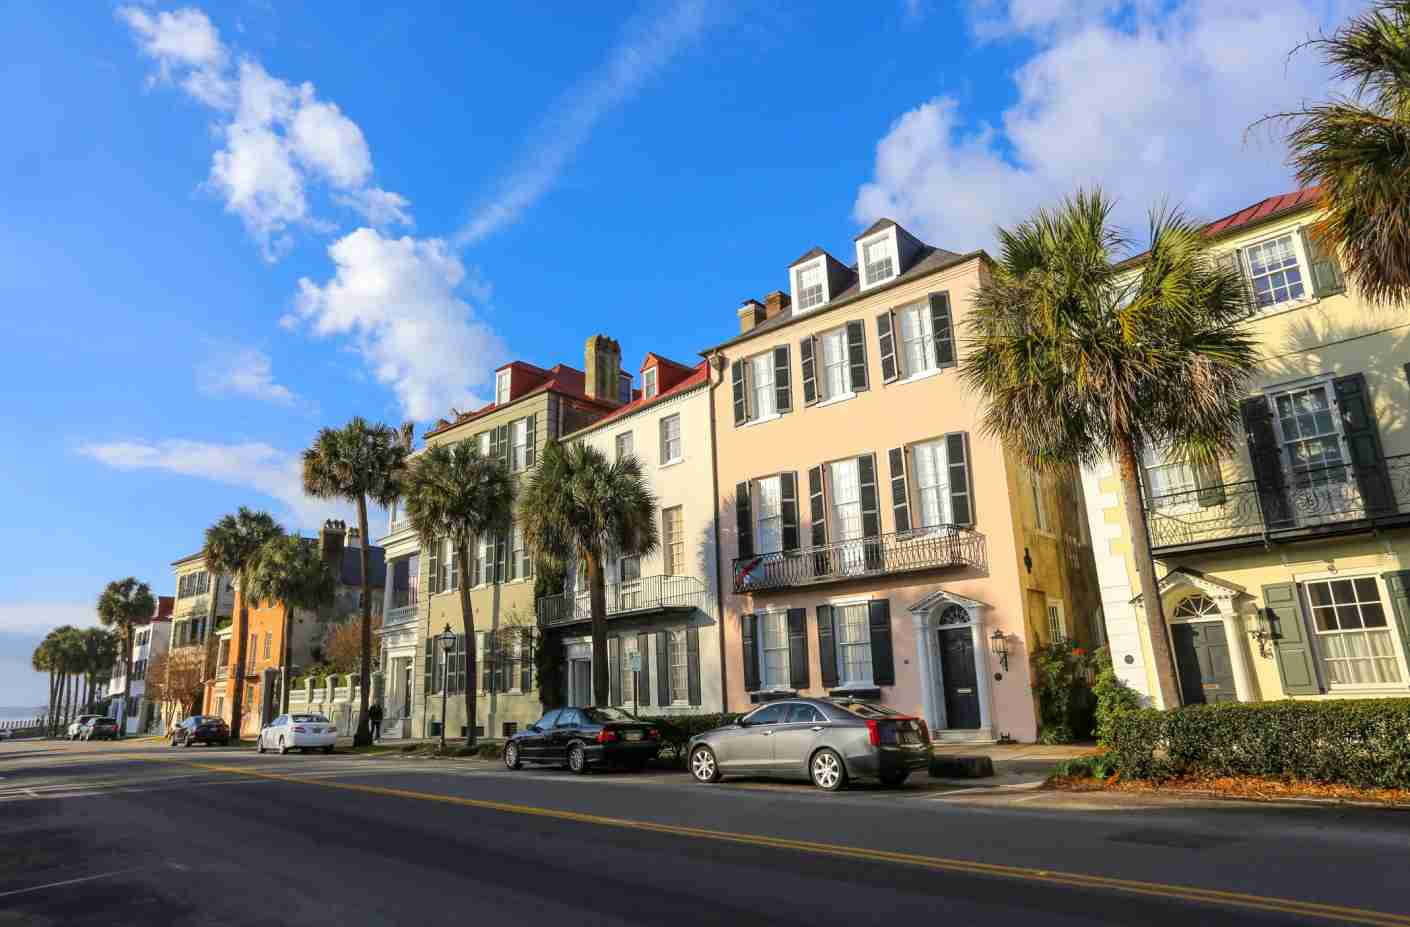 Beautiful day in charming and historic Charleston, SC.